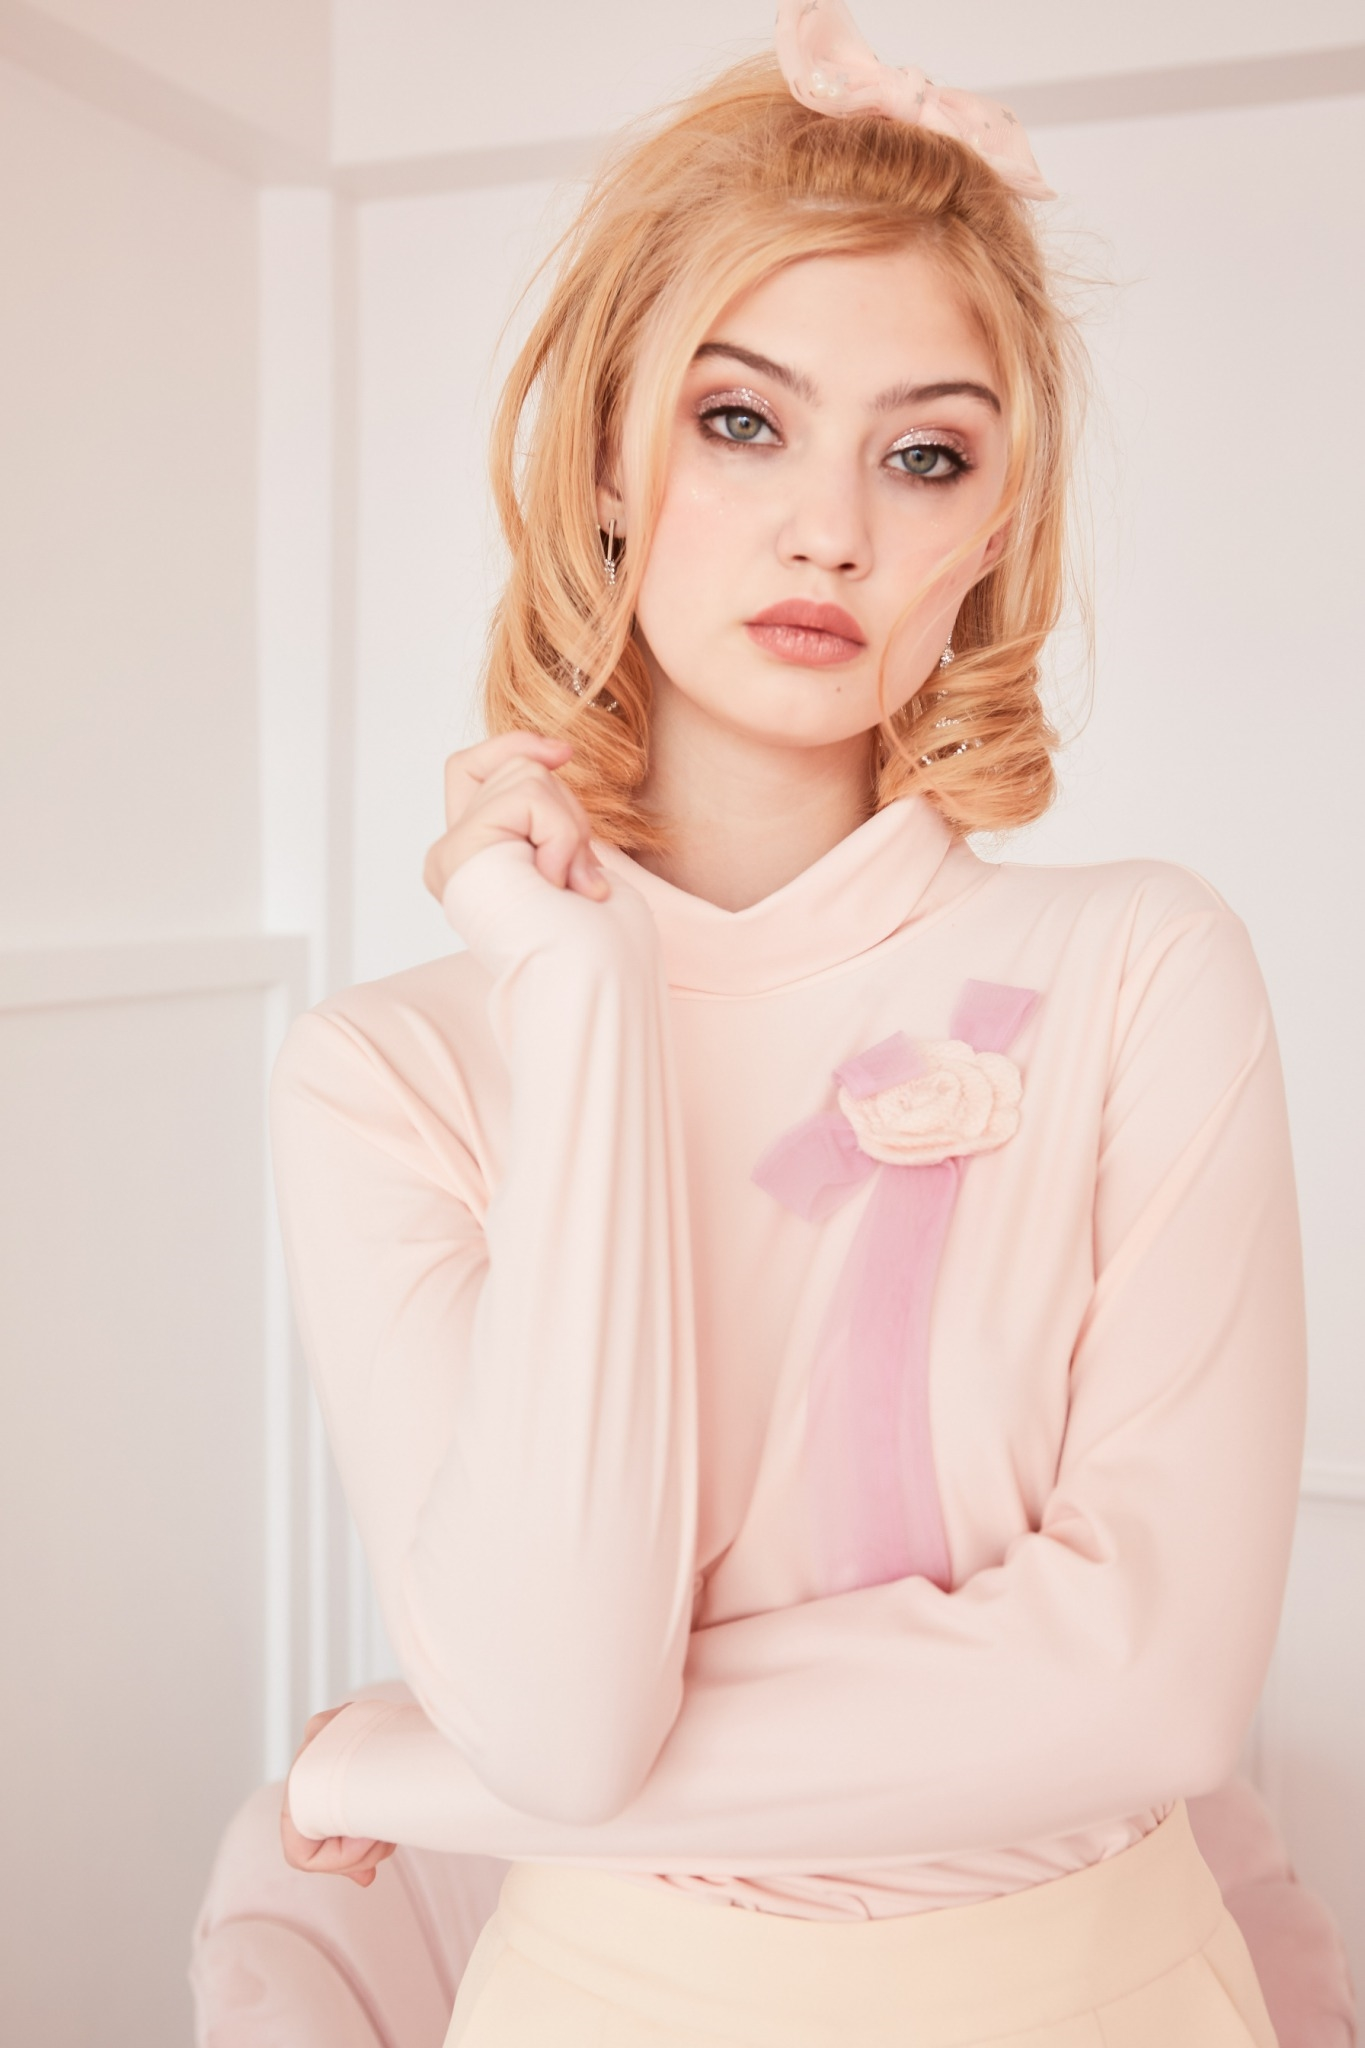 JR15 PNK - Juliet's Rose Turtleneck Thermal Long Sleeve T-Shirt - In Stock Now